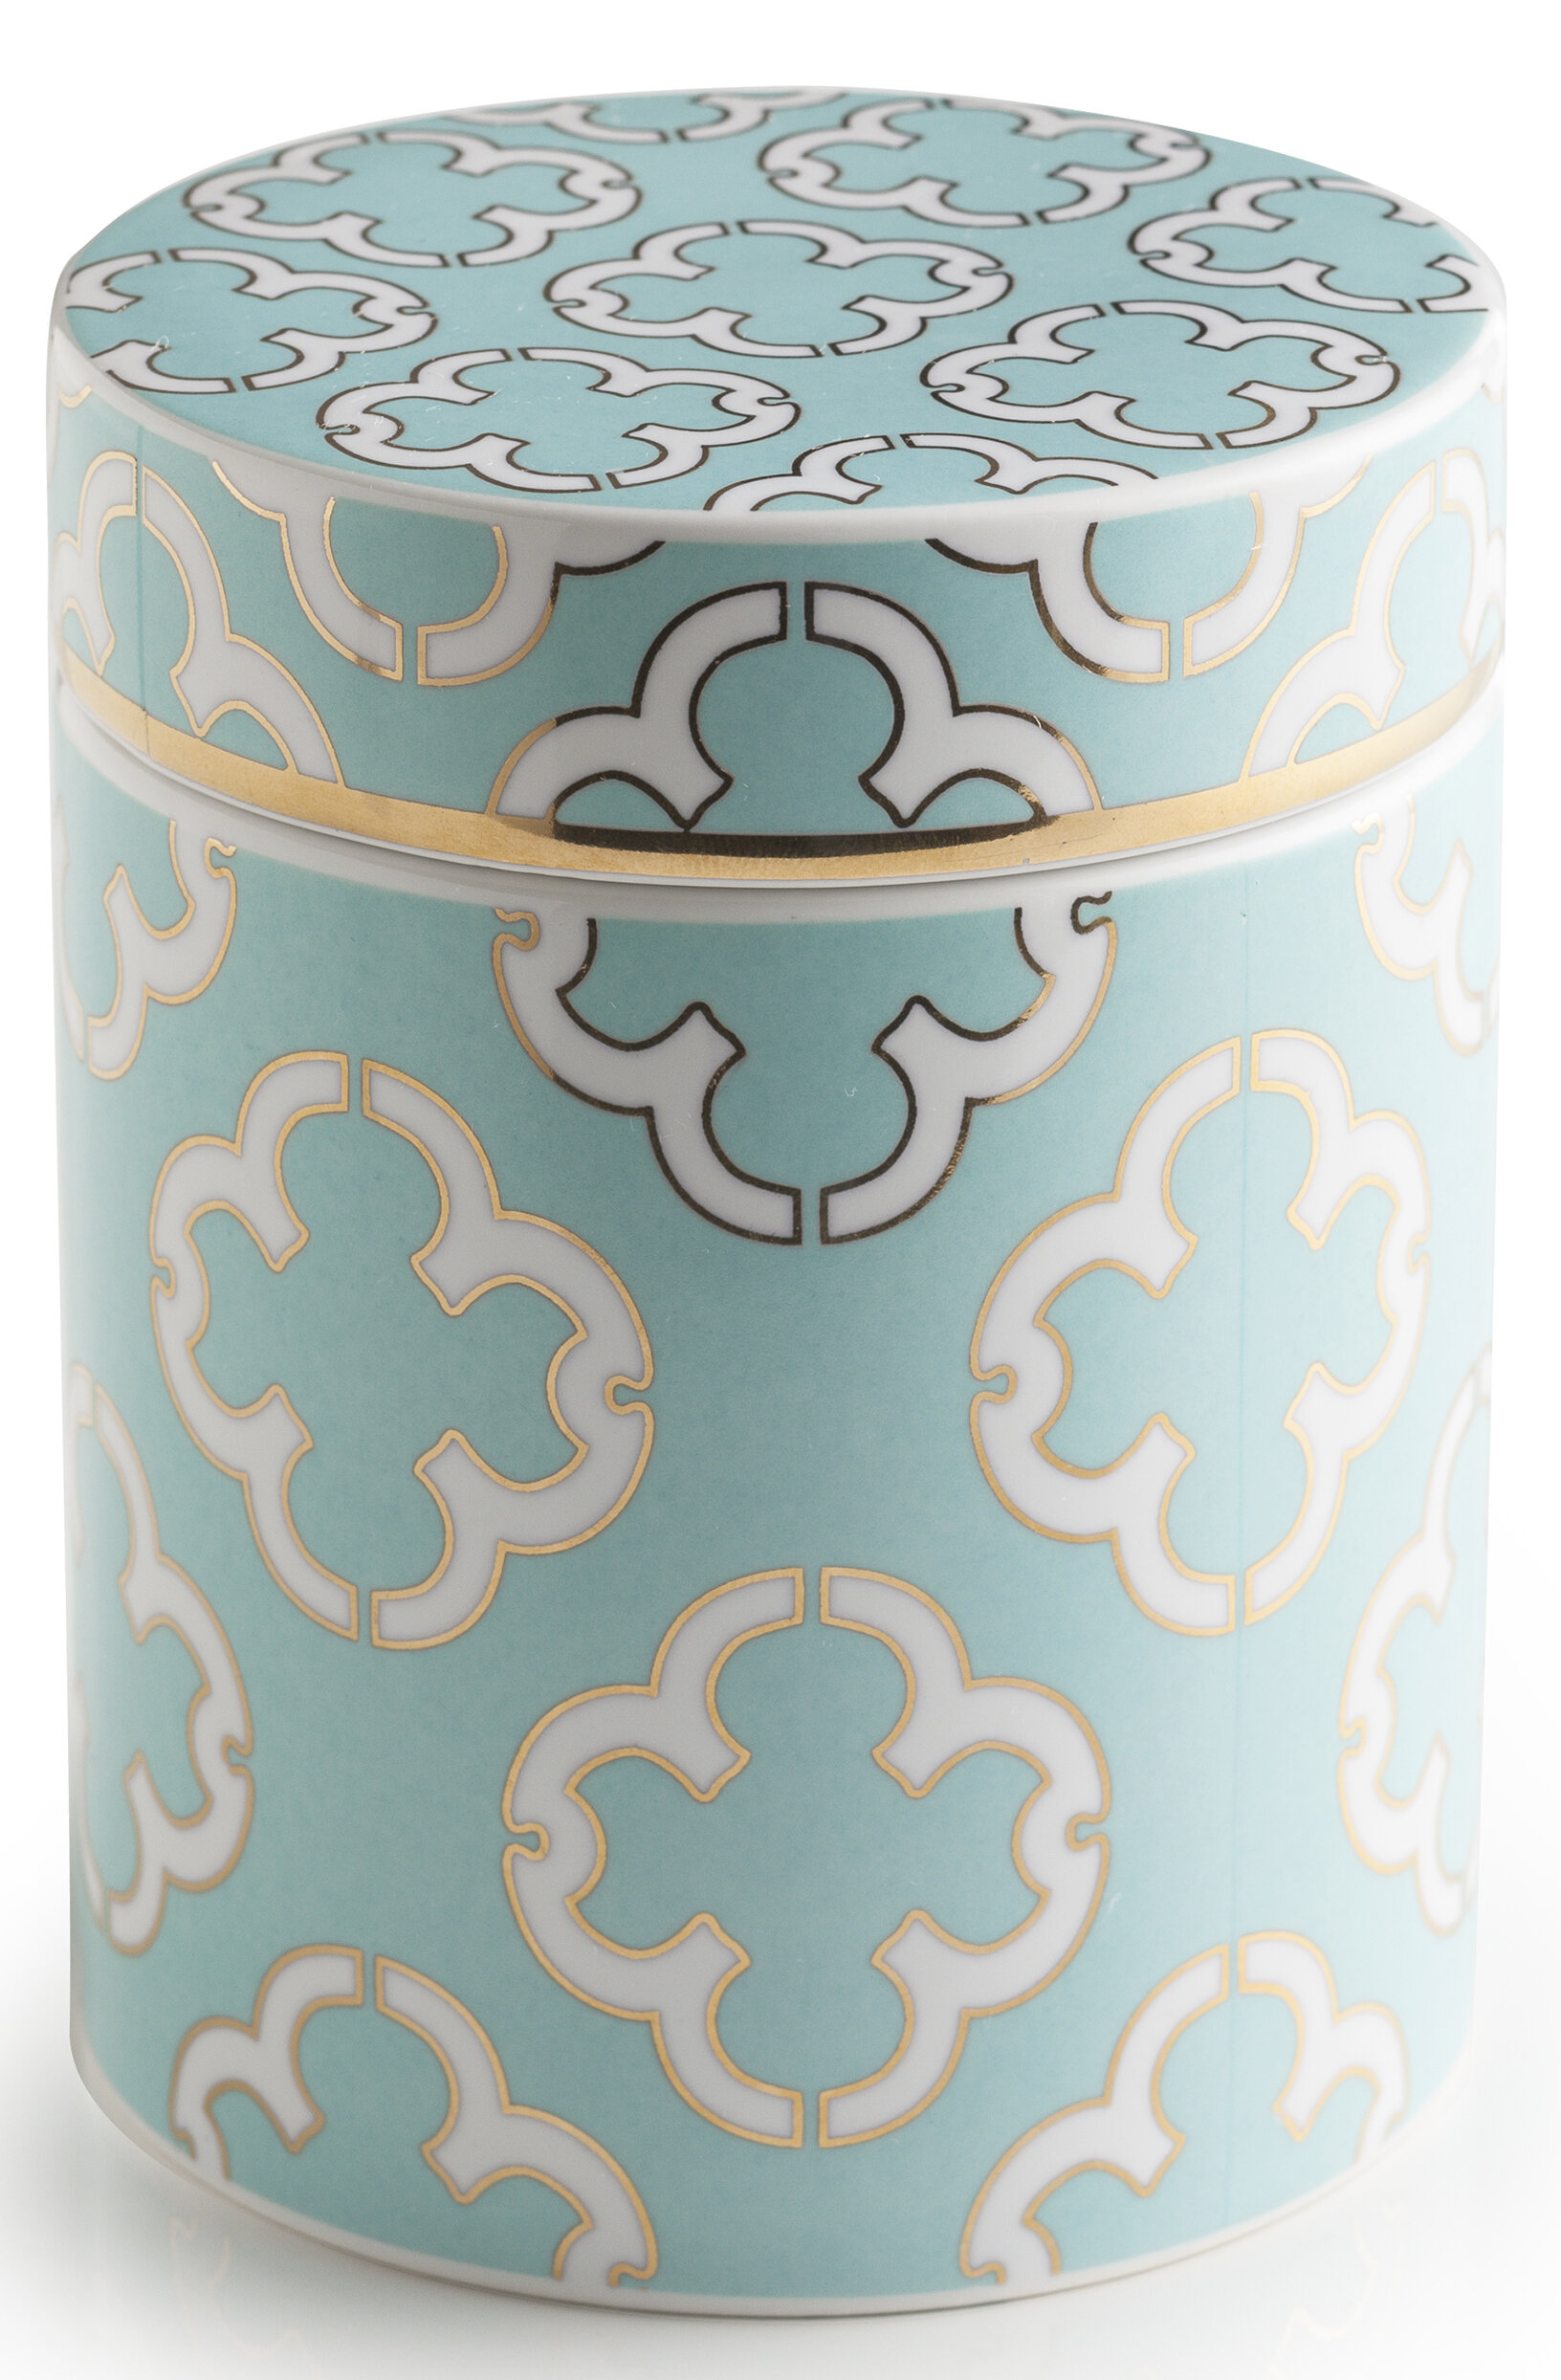 Rosanna Alhambra Large Kitchen Canister & Reviews | Wayfair